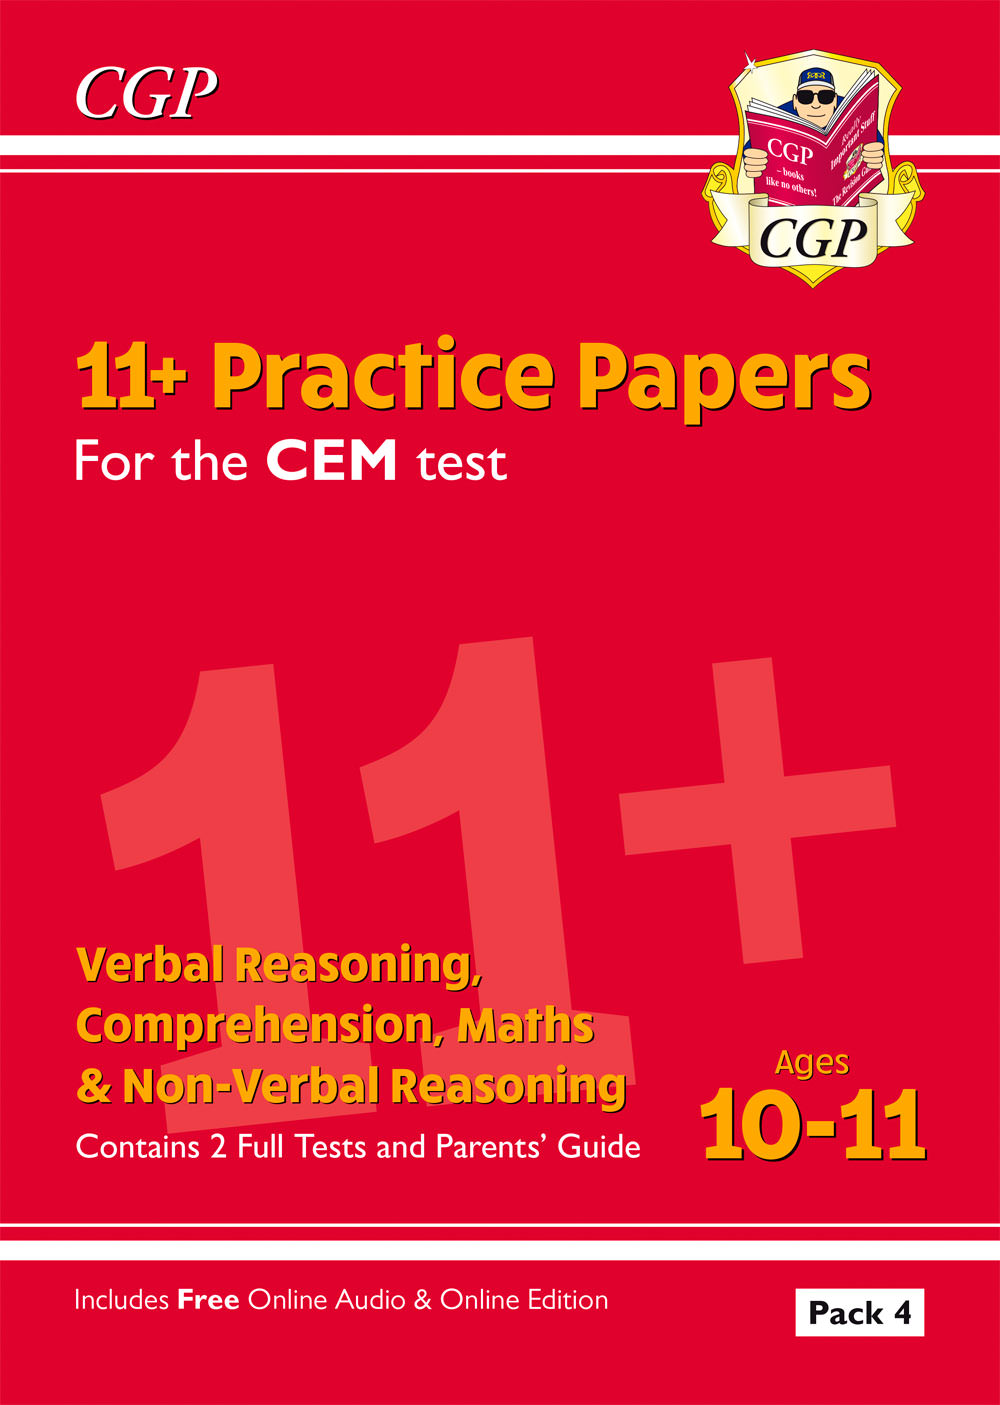 ELP4DE2 - 11+ CEM Practice Papers: Ages 10-11 - Pack 4 (with Parents' Guide & Online Edition)